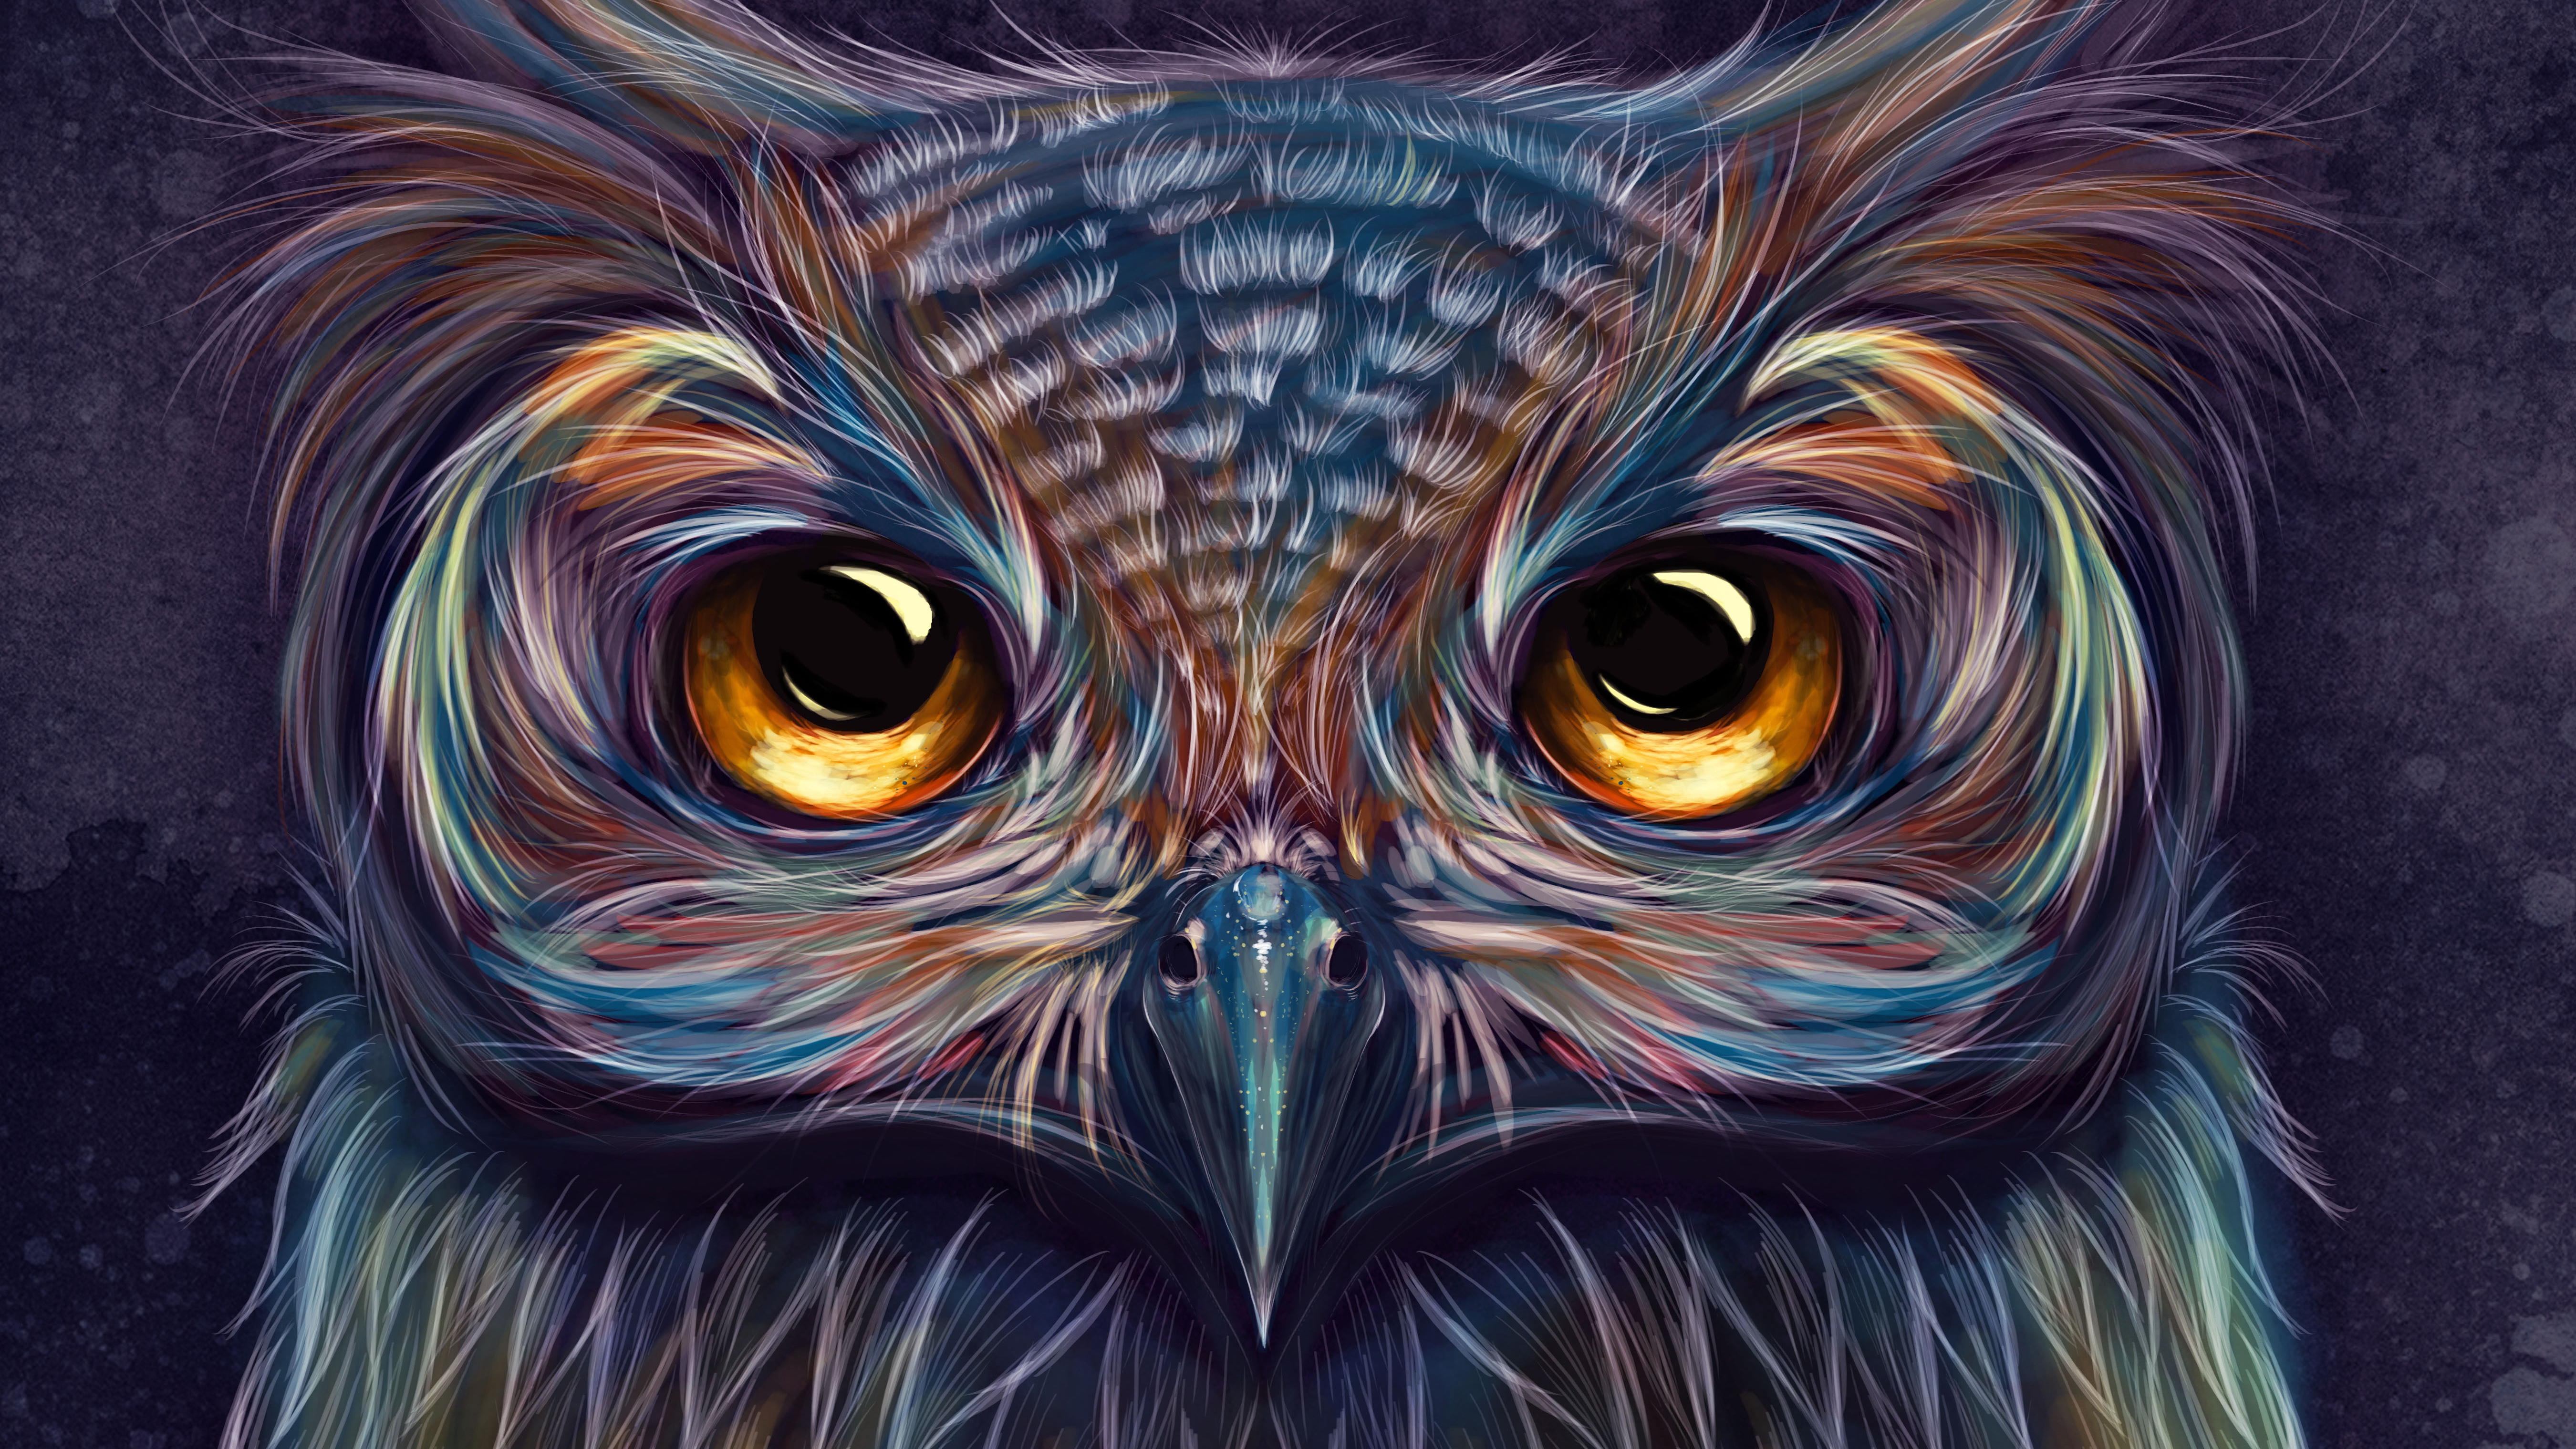 Owl Colorful Art 5k, HD Artist, 4k Wallpapers, Images ...  Owl Colorful Ar...